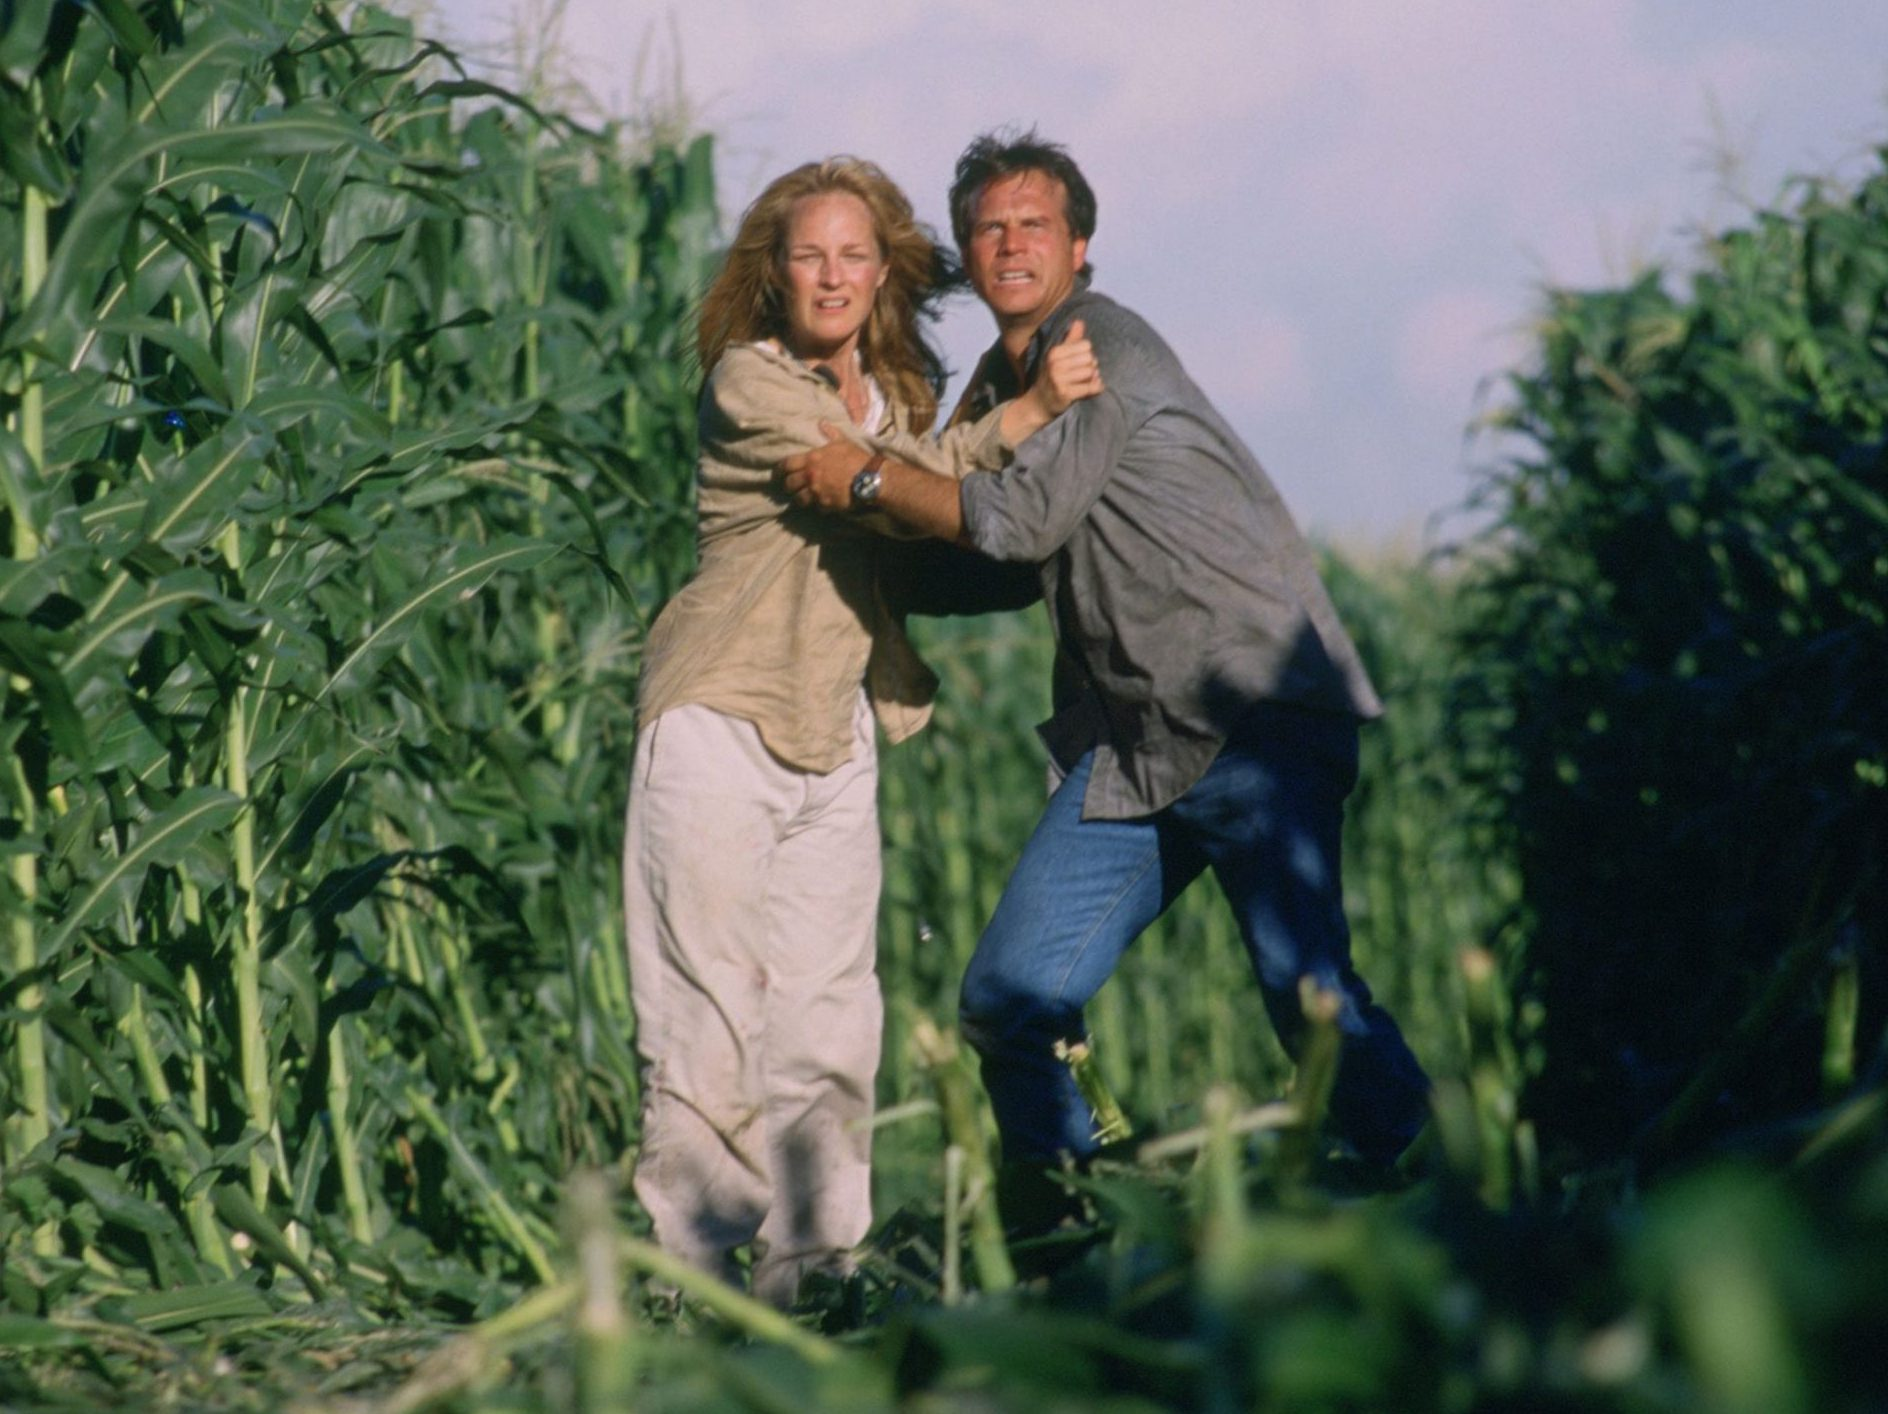 02f66548 8d97 4c8c 8e62 e85de492c92e scaled e1620812963793 Twister: 20 Facts About The 1996 Blockbuster That Will Blow You Away